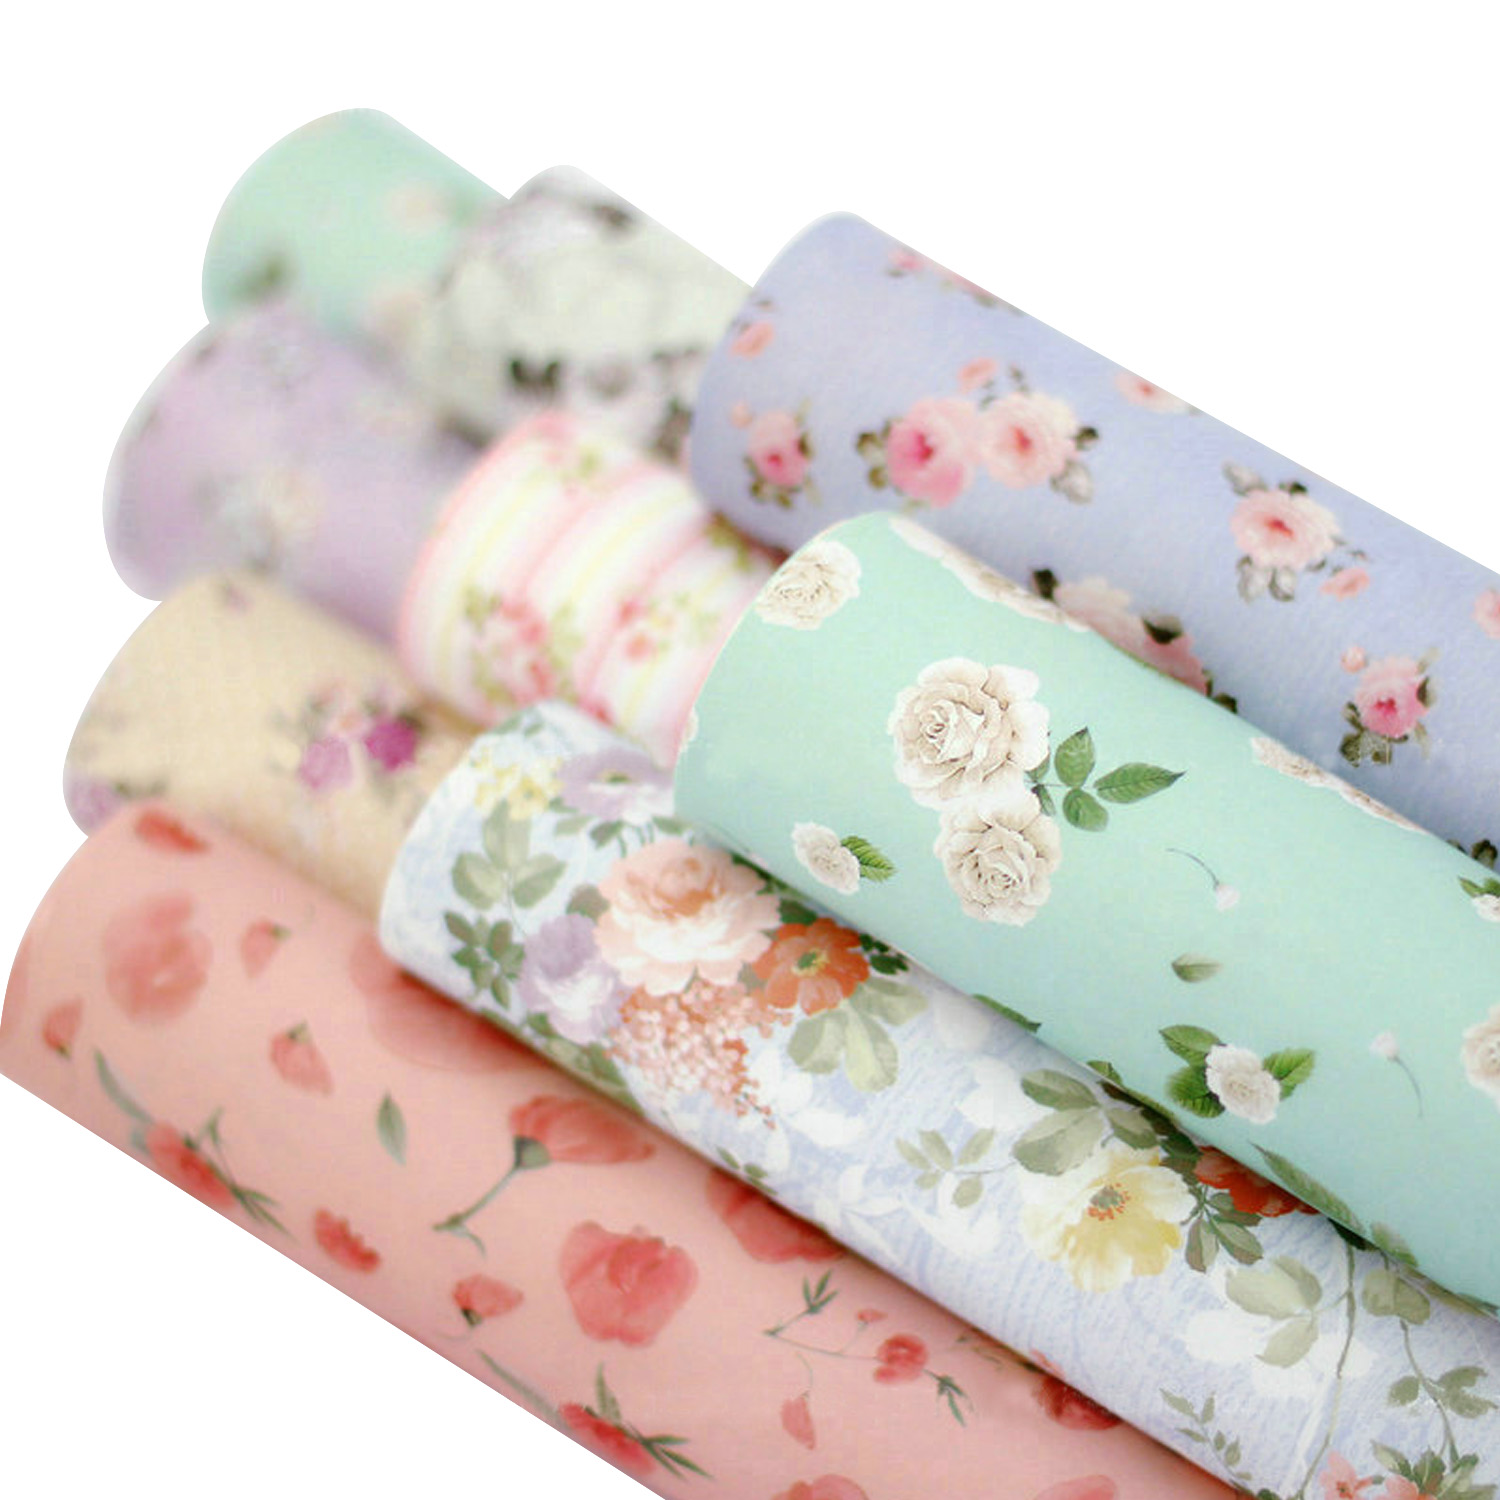 Behogar 10 Rolls Assorted Styles Lovely Flower Pattern Gift Wrapping Paper Set For Birthday Holiday Wedding New Years Valentines